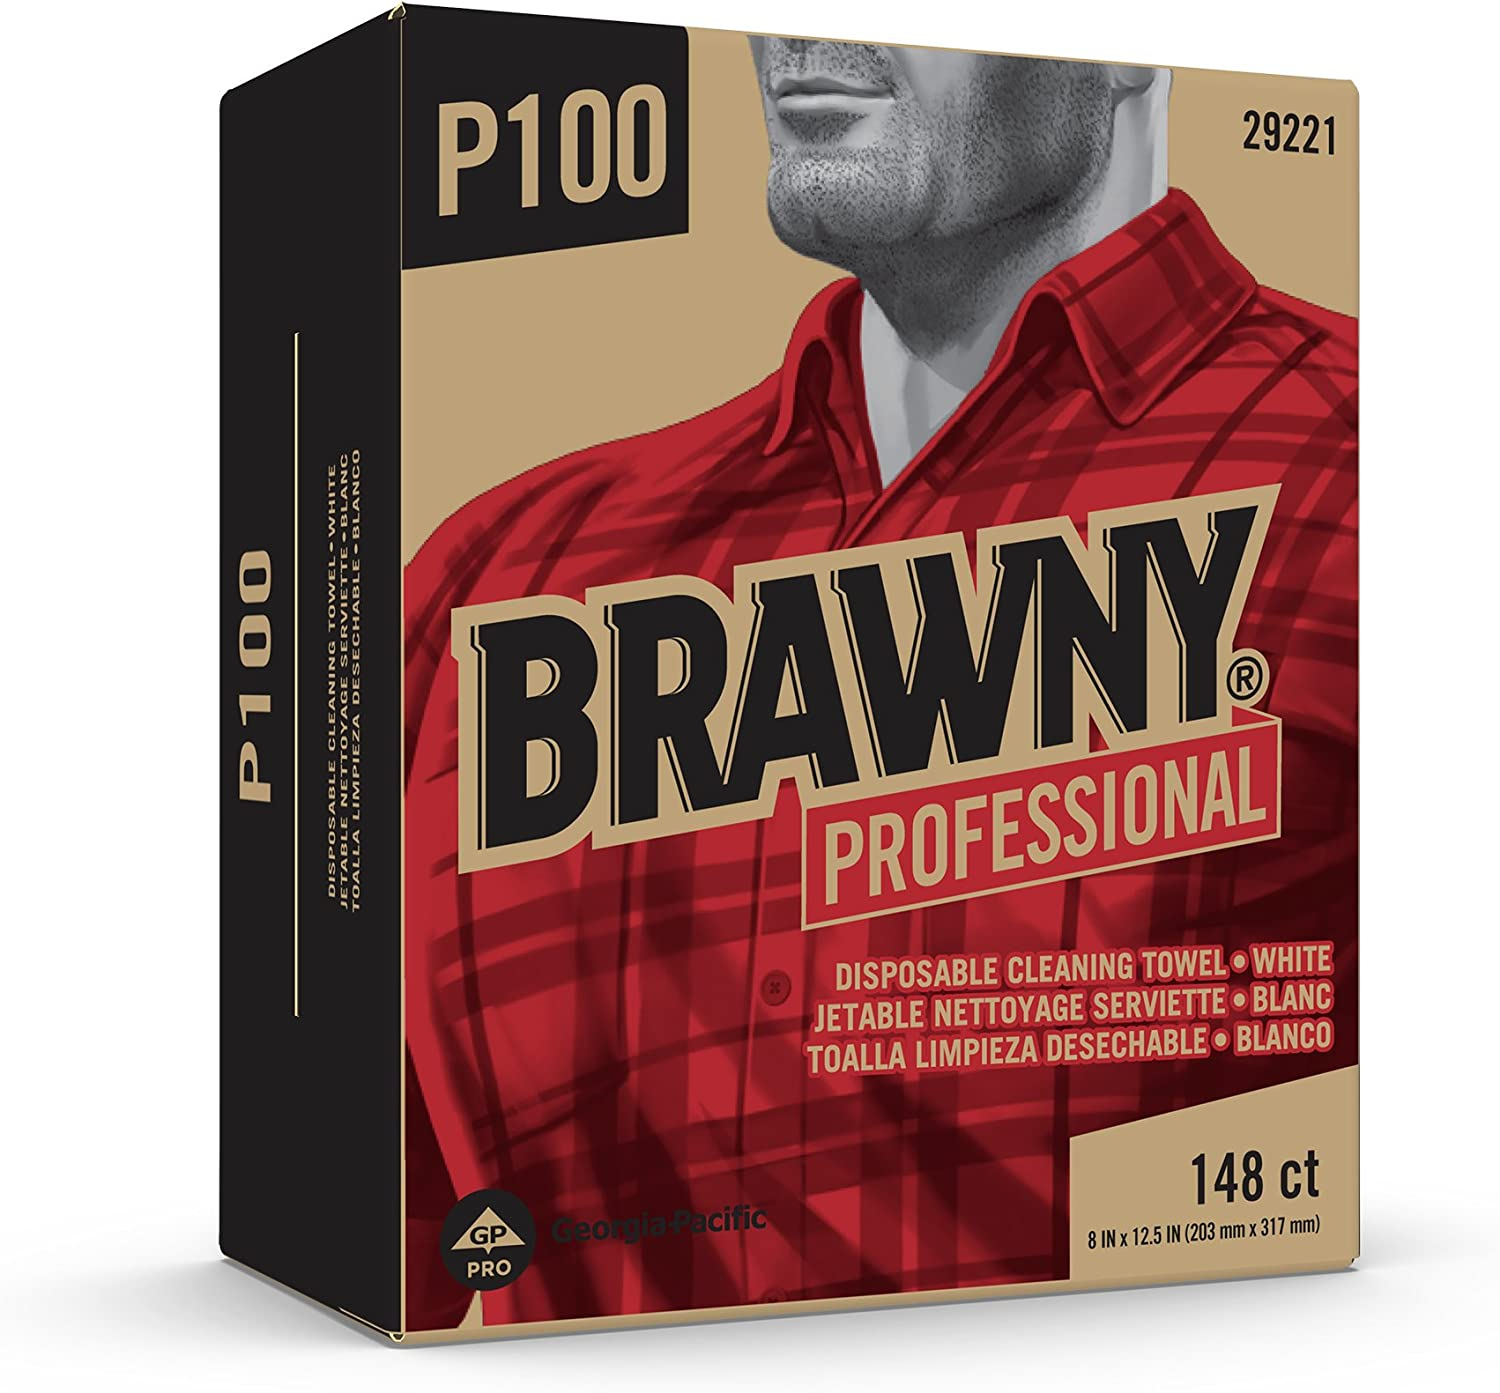 Brawny Professional P100 Disposable Cleaning Towel by GP PRO, 29221, Light Duty, Tall Box, White, 20 Boxes @ 148 Count